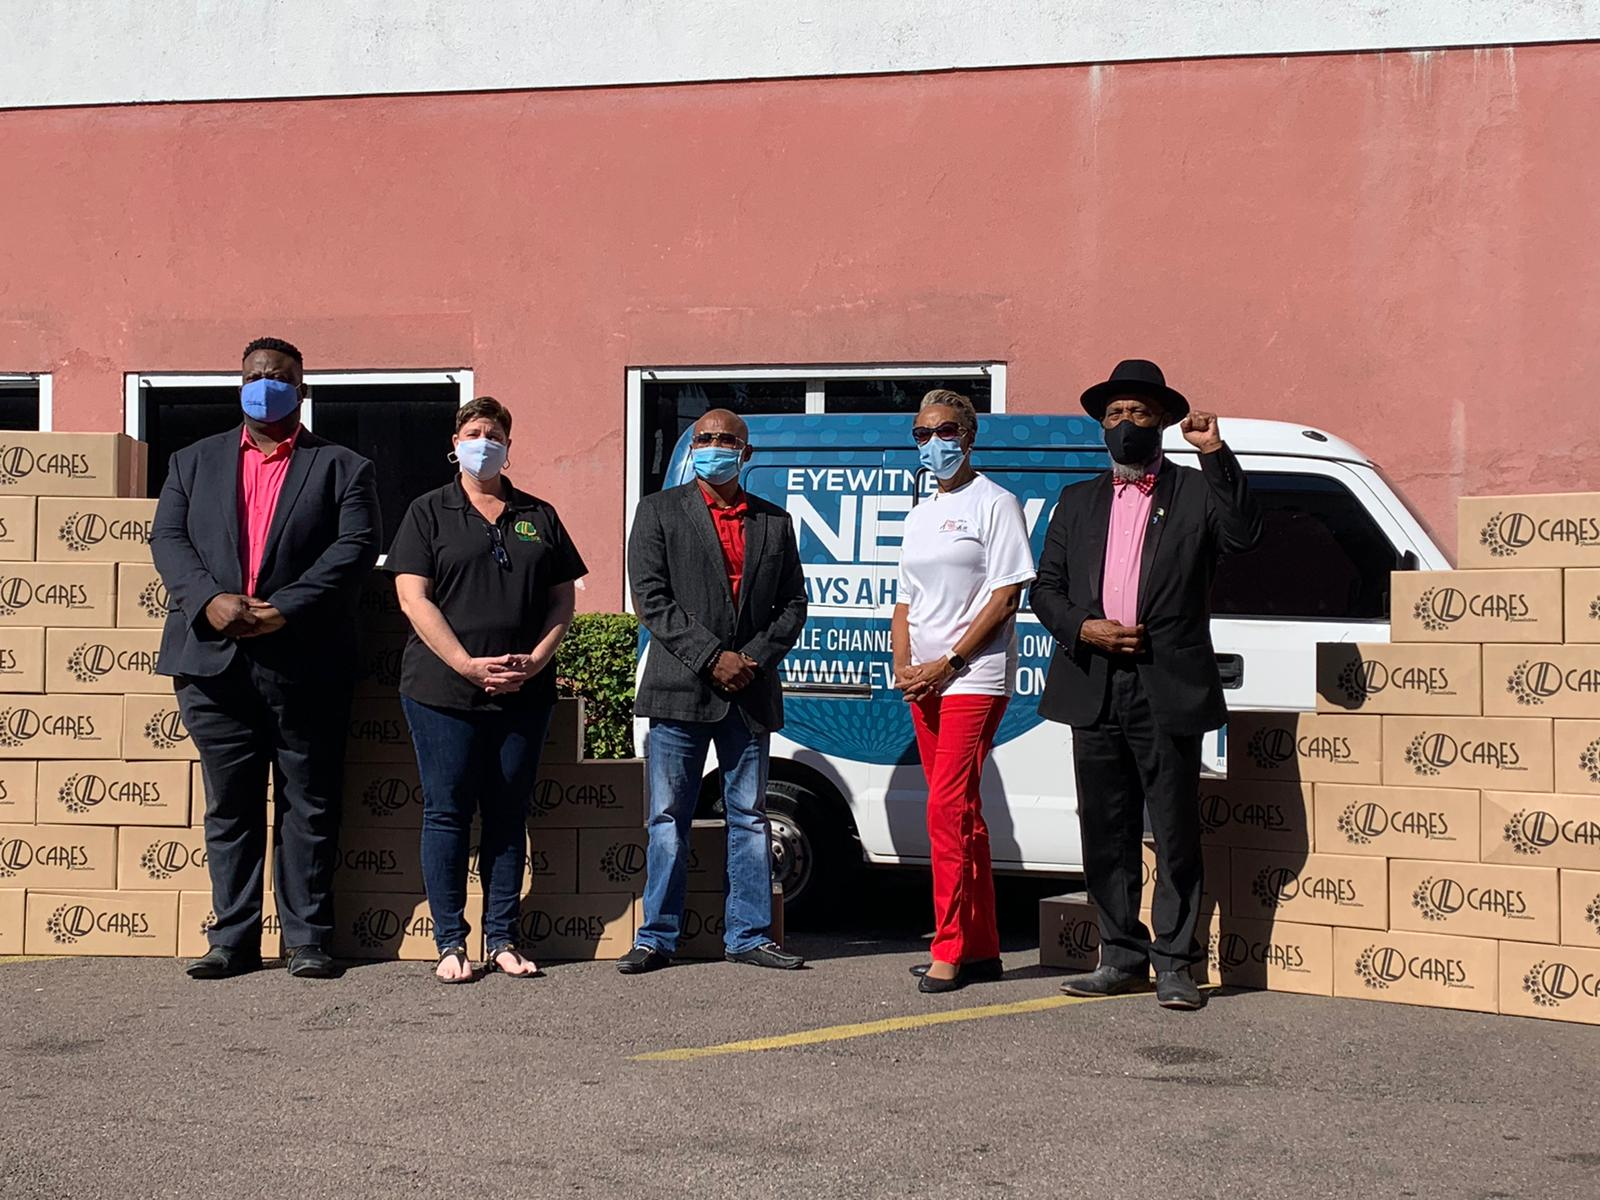 More than 100 food boxes donated to the AIDS Foundation